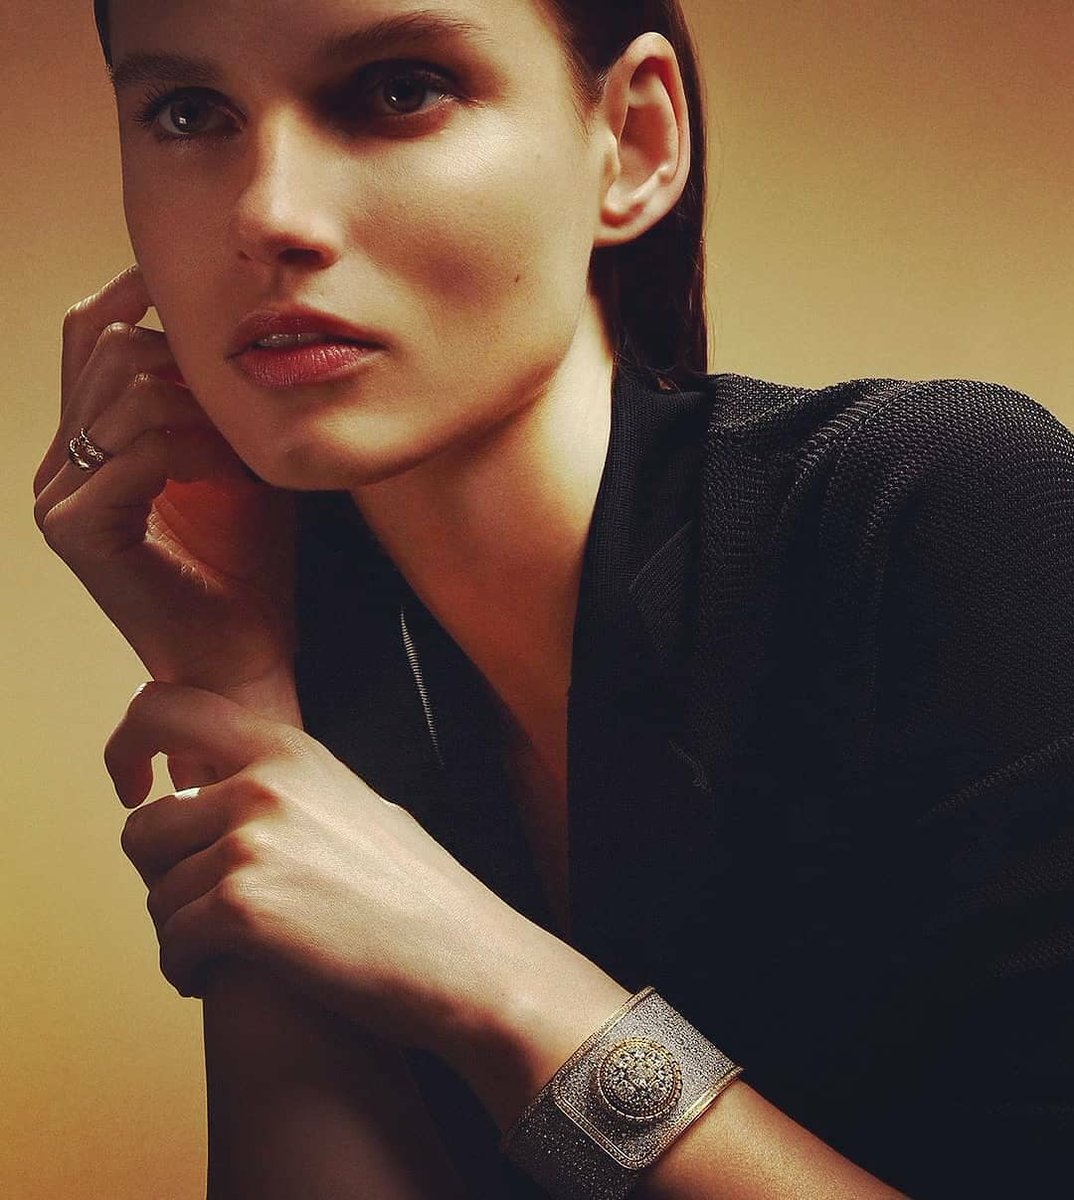 Loving @CHANEL❤The MADEMOISELLE PRIVÈ BOUTON. The spirit of couture meets the ingenuity of watchmaking.Gabrielle Chanel wore the unique timepiece,set with over 2,000 diamonds, on her wrist. Discover the collection @CHANEL.❤💕💙💜 #MademoisellePriveBouton  #CHANELHauteHorlogerie https://t.co/qOnwVXHT8n